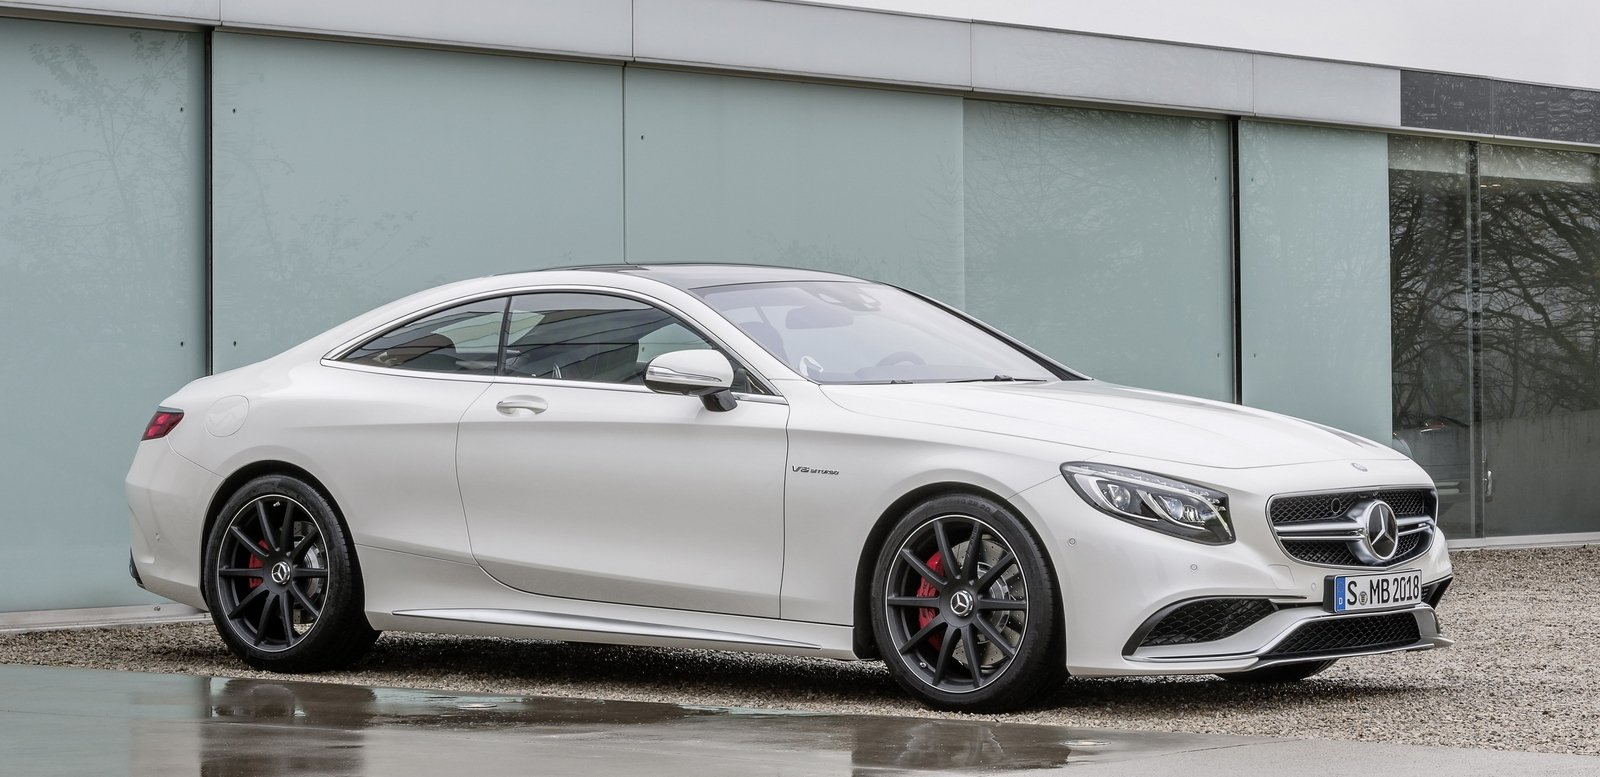 2015 mercedes benz s63 amg coupe review top speed for Mercedes benz e63s